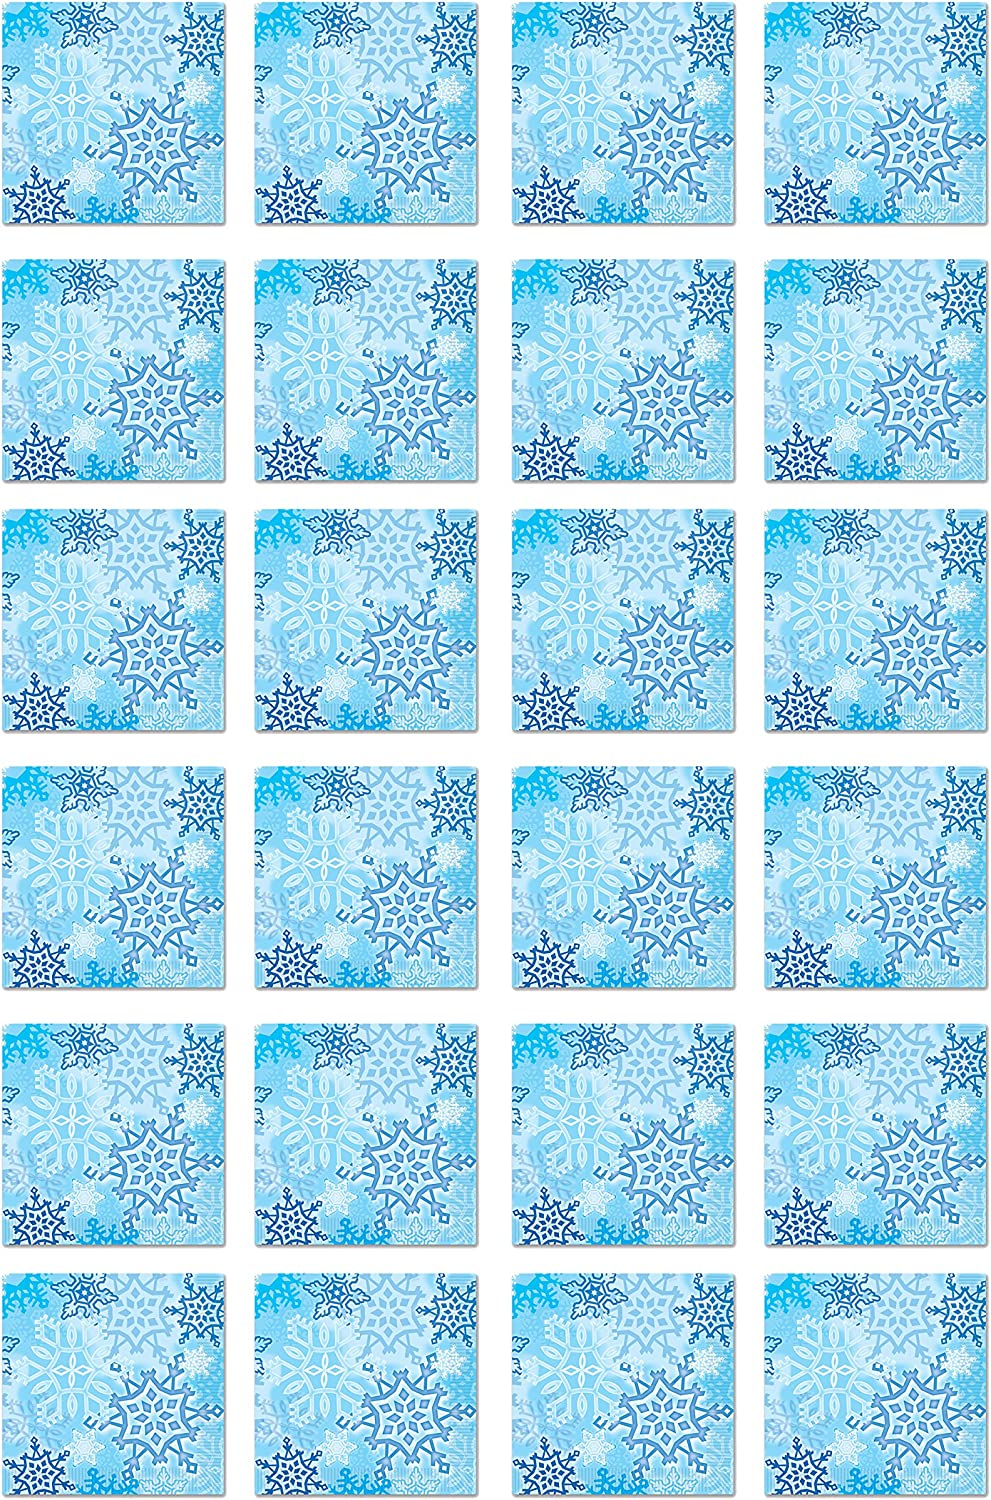 Beistle Snowflake Beverage Napkins 2-Ply Light Blue/White, Pack of 48